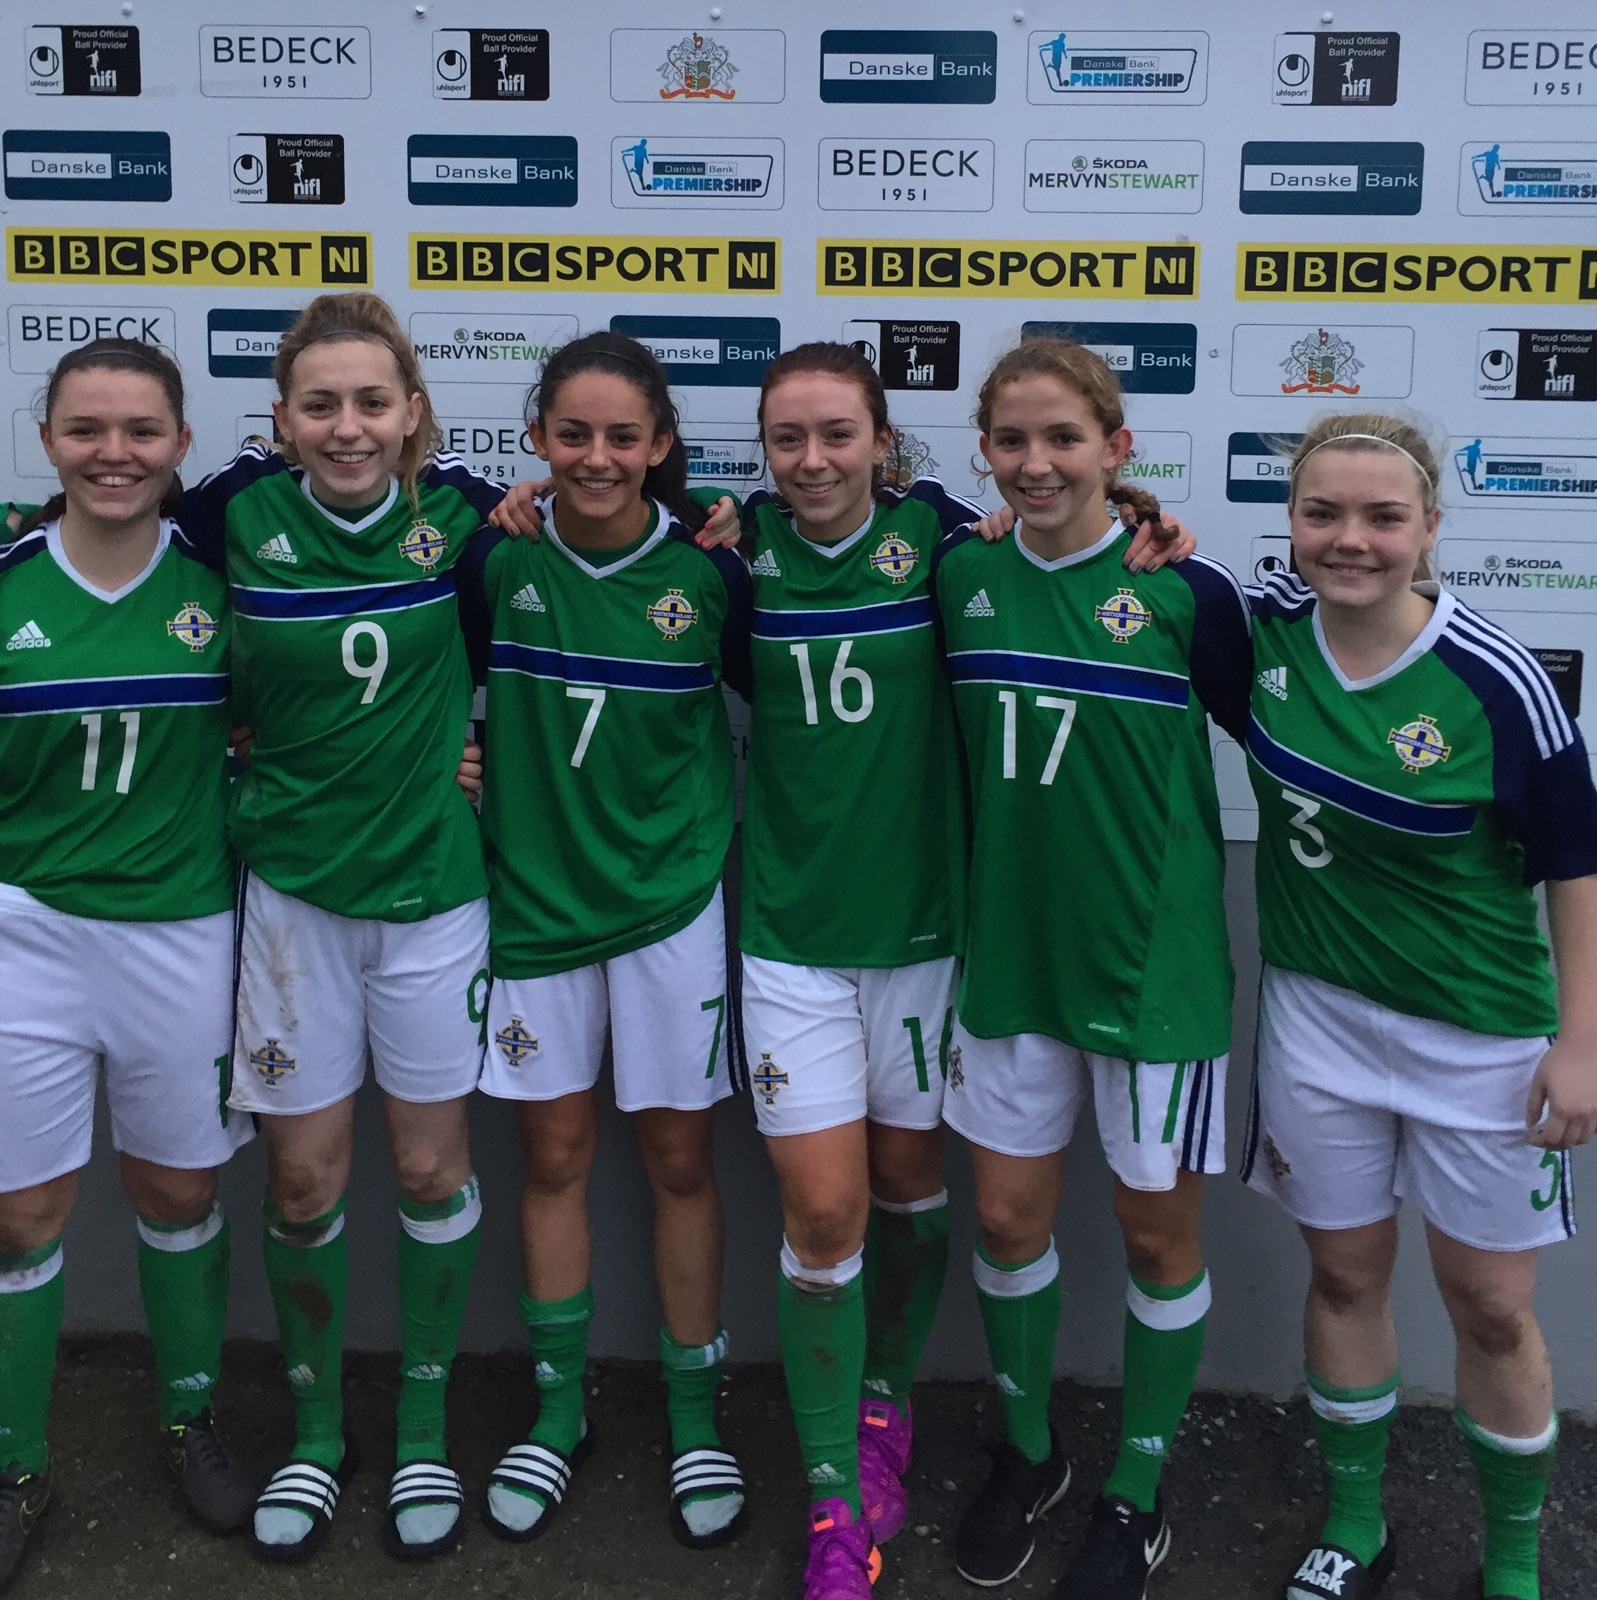 competitive price d40be ec833 Megan Reilly (99 ECNL) Selected to U19 Northern Ireland ...